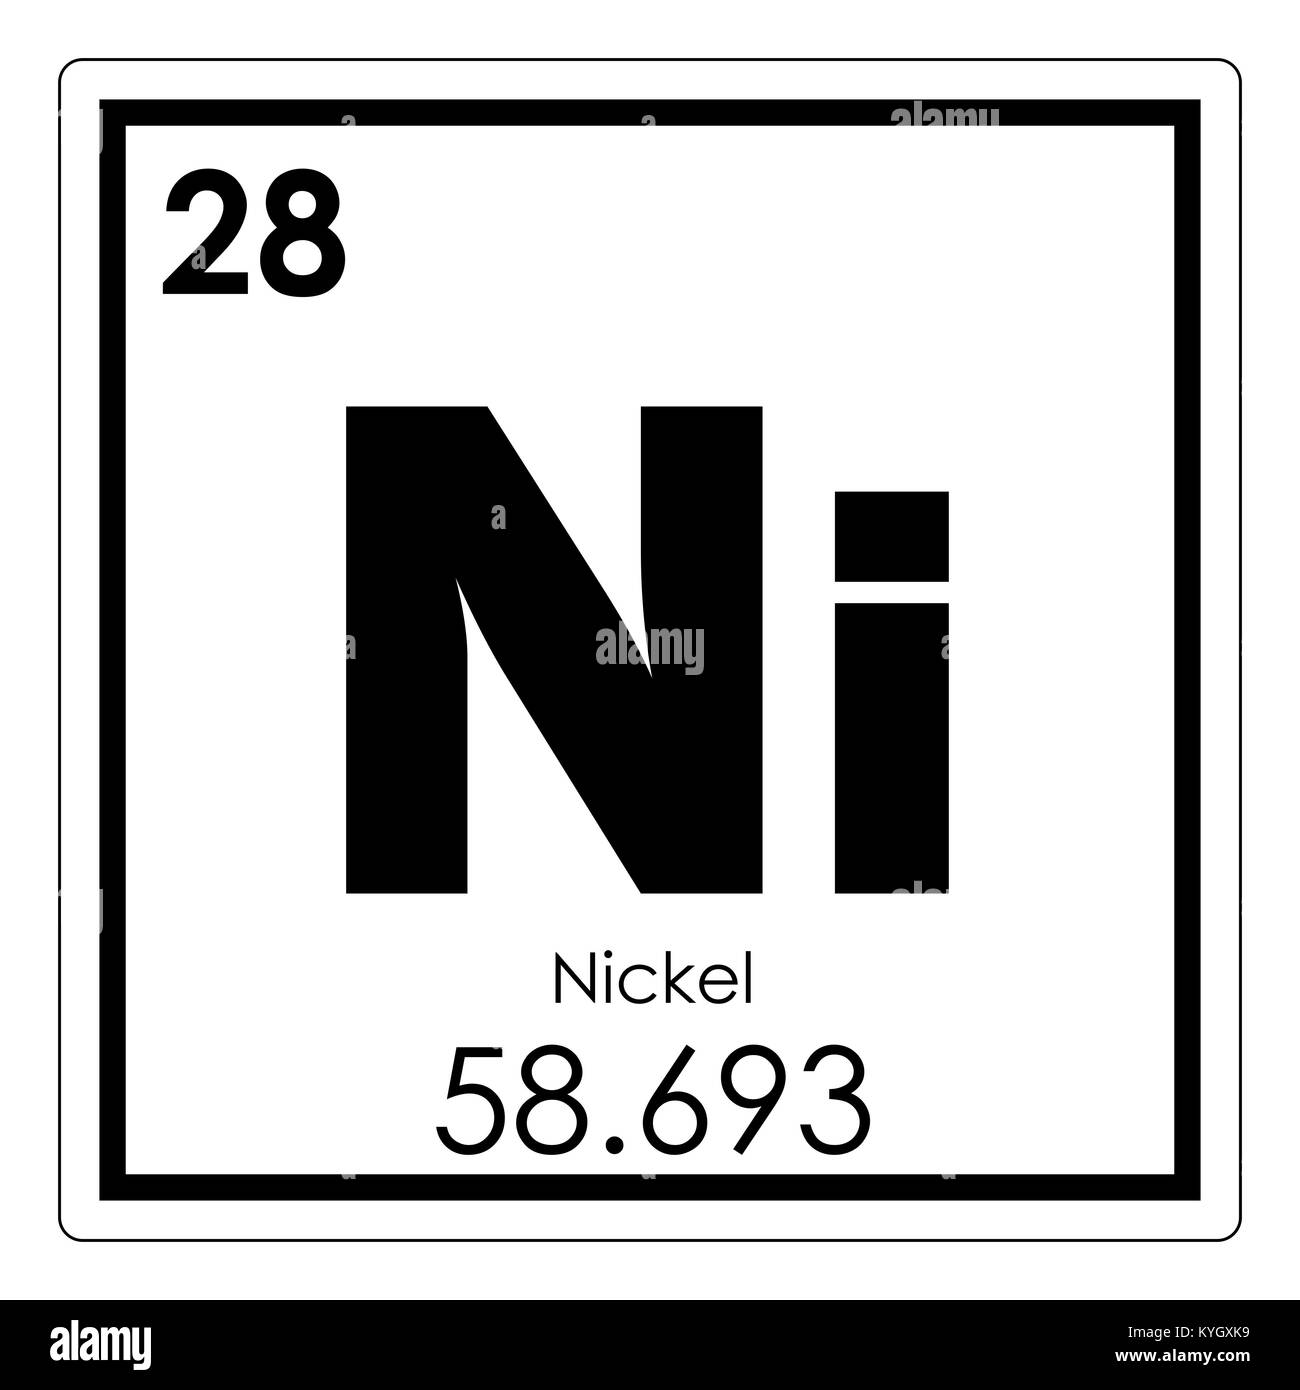 Nickel chemical element periodic table science symbol stock photo nickel chemical element periodic table science symbol urtaz Gallery